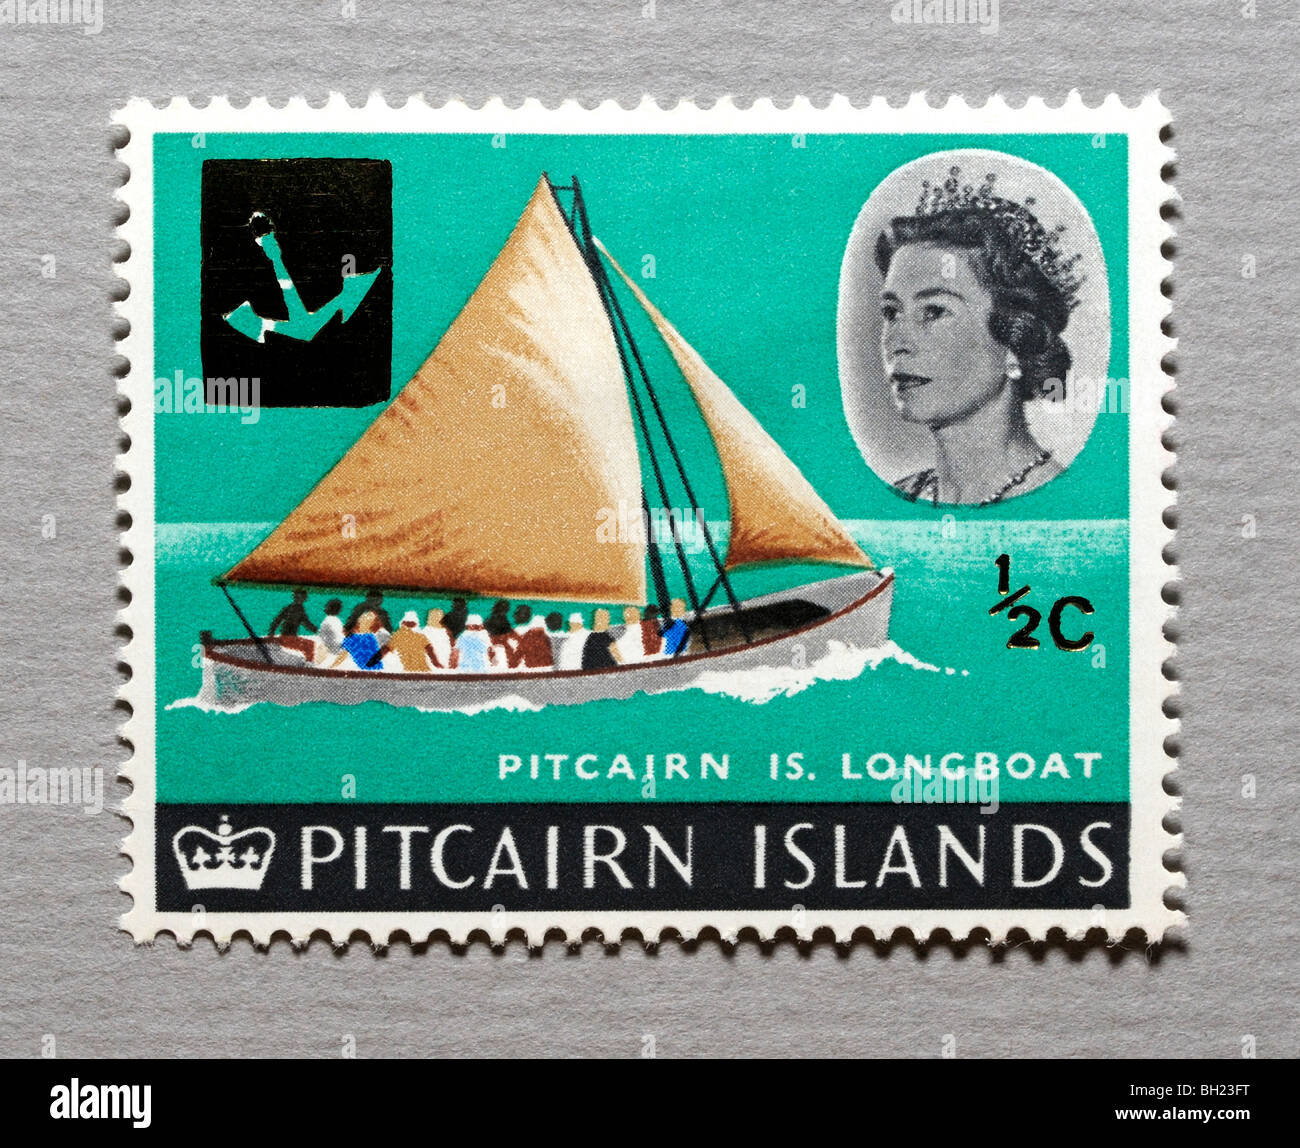 Pitcairn Islands Postage Stamp. - Stock Image